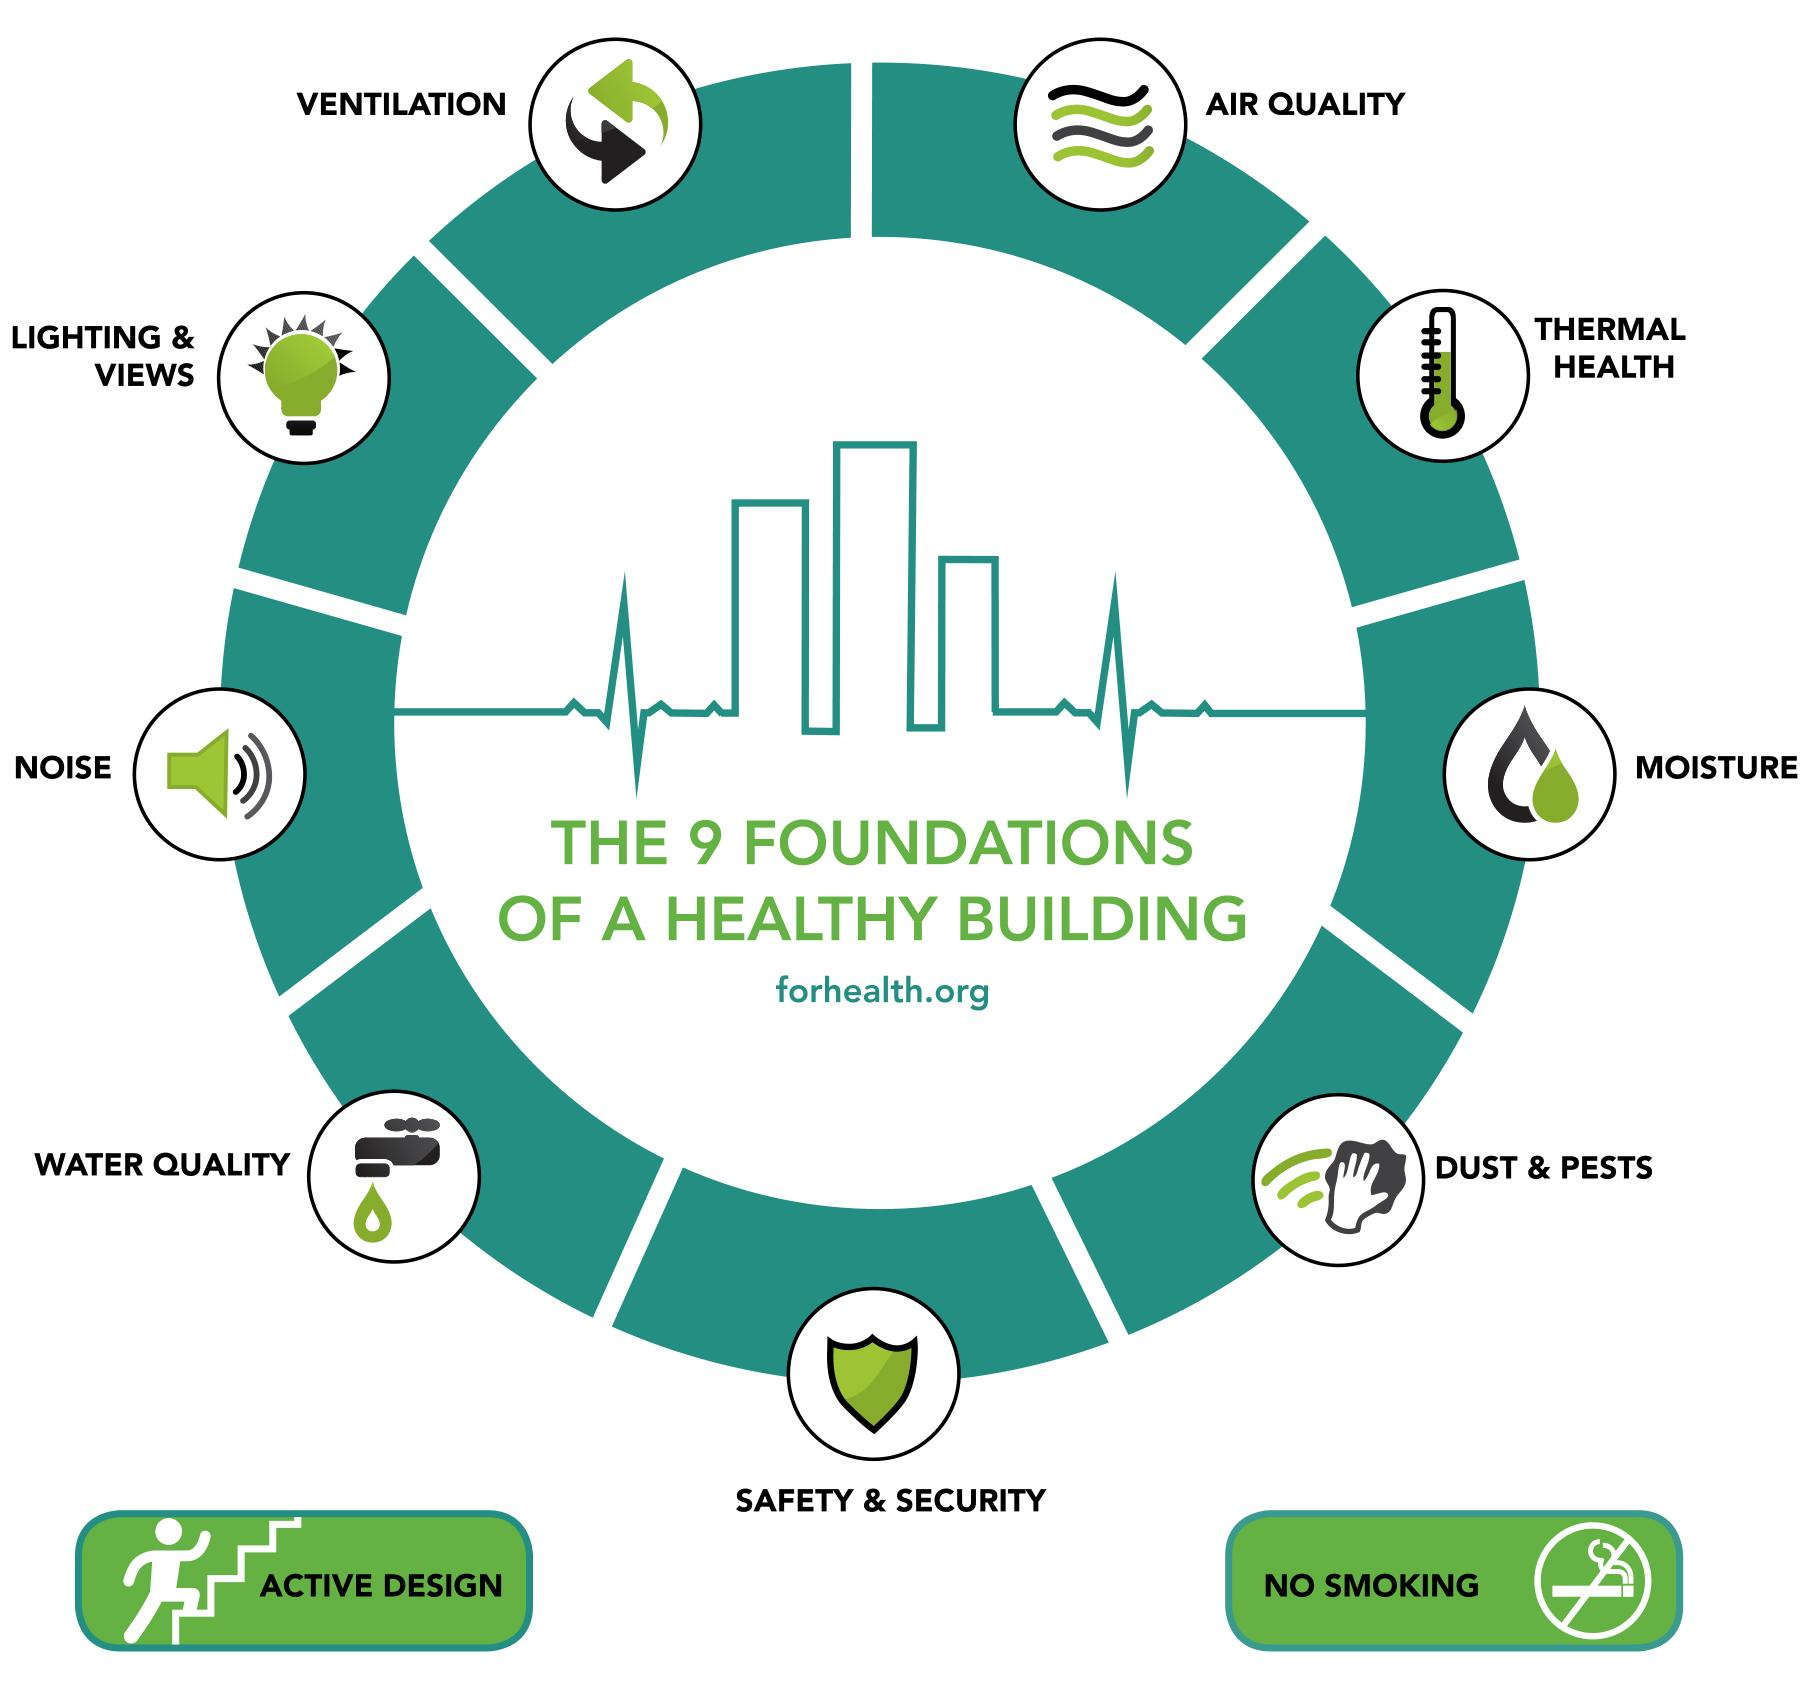 circle graphic labeled the 9 foundations of a healthy building, including air quality, thermal health, moisture, dust, safety, water, noise, lighting and ventilation